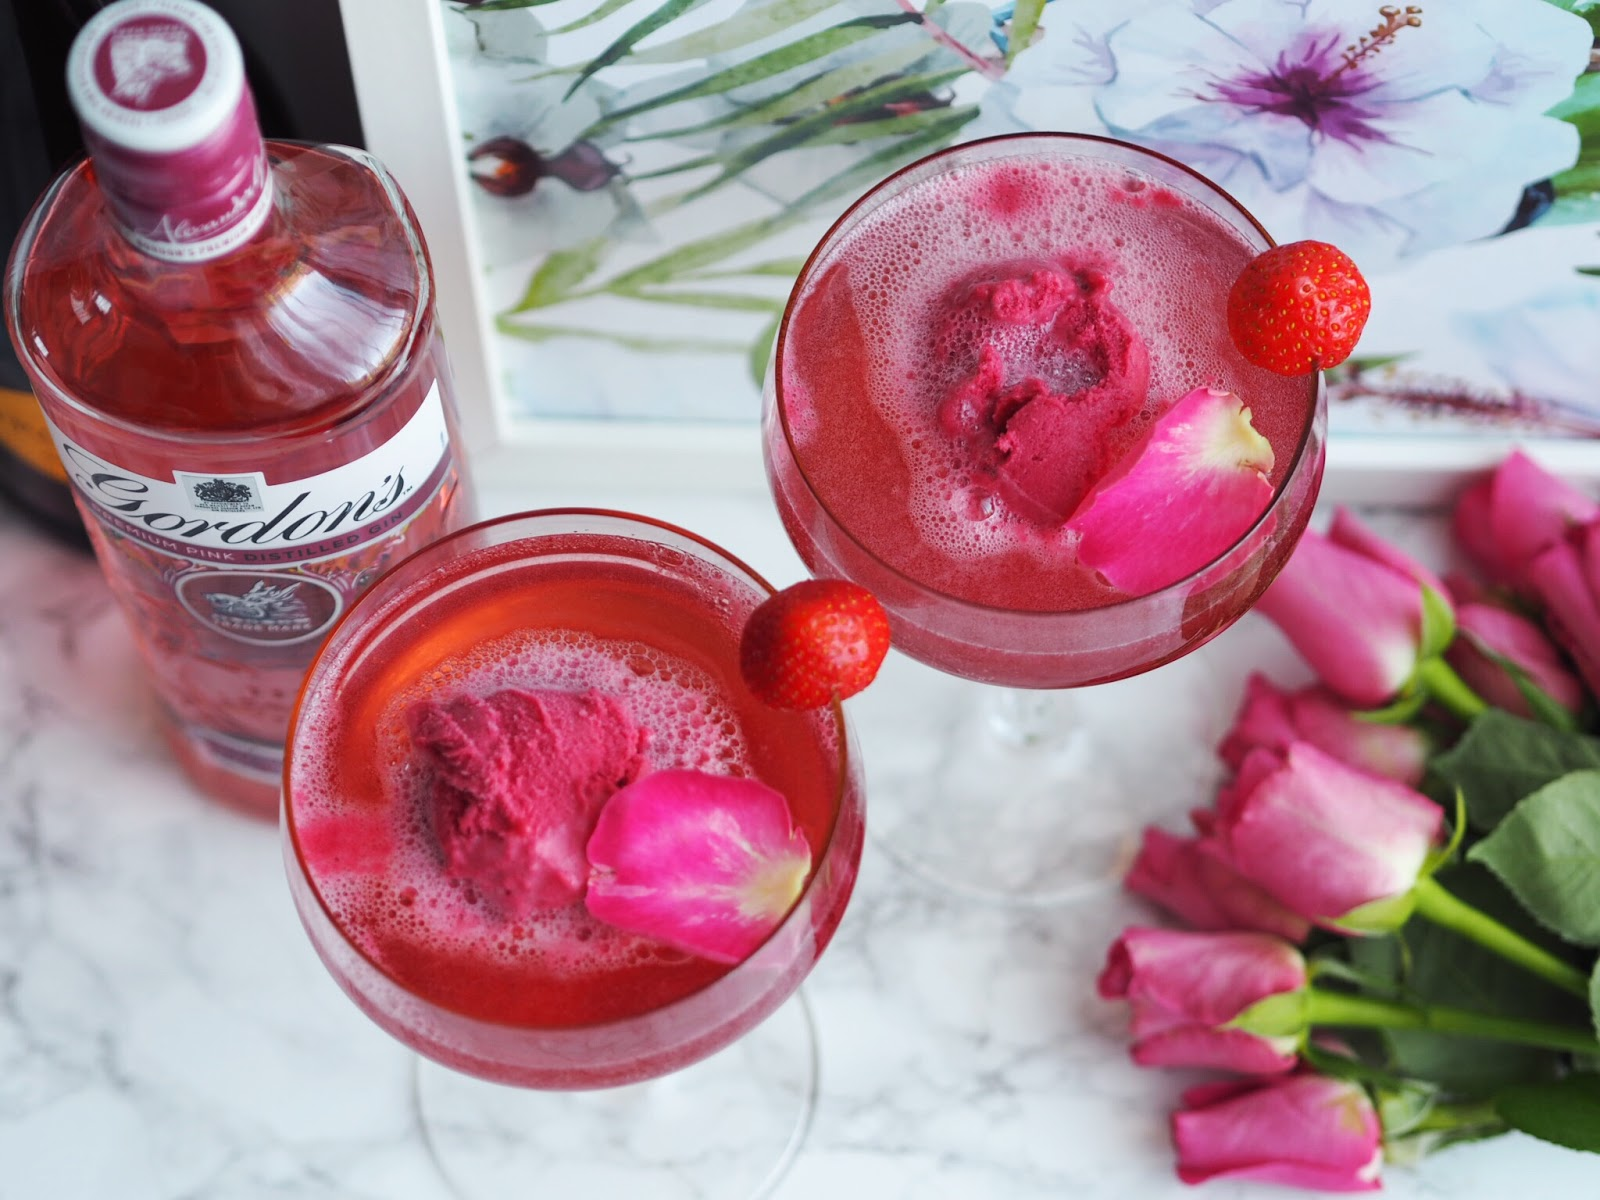 Gordons Pink Gin Fizz Cocktail Recipe View From Above with Roses